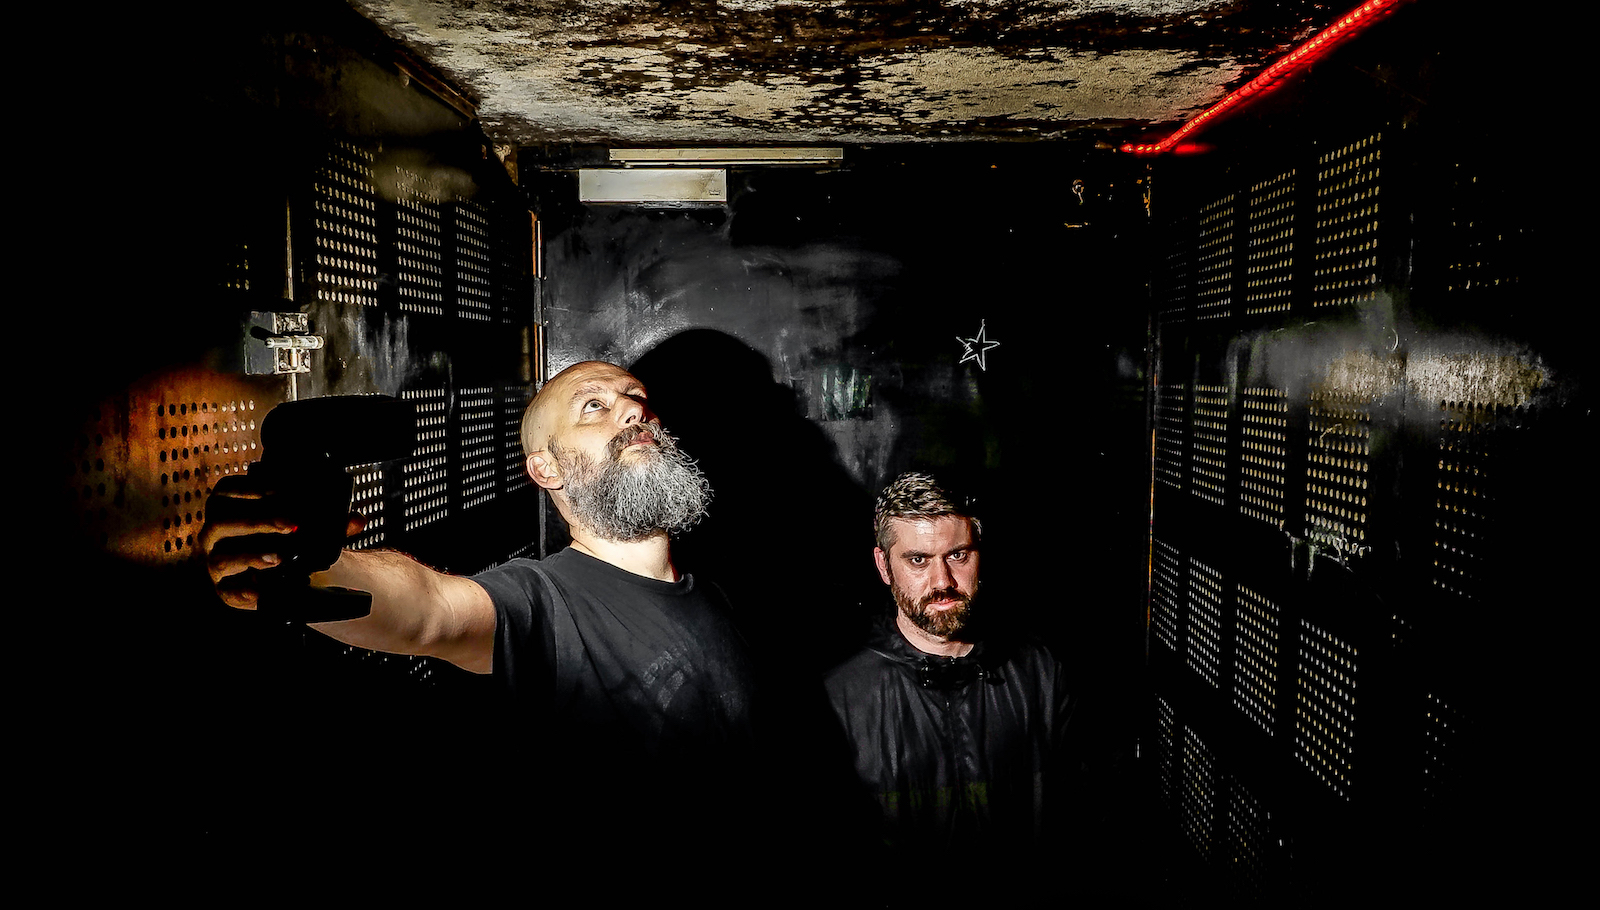 """Hear Skeletonwitch's Guitarist Shred on Dead Neanderthals' New Song """"Death Bell"""""""